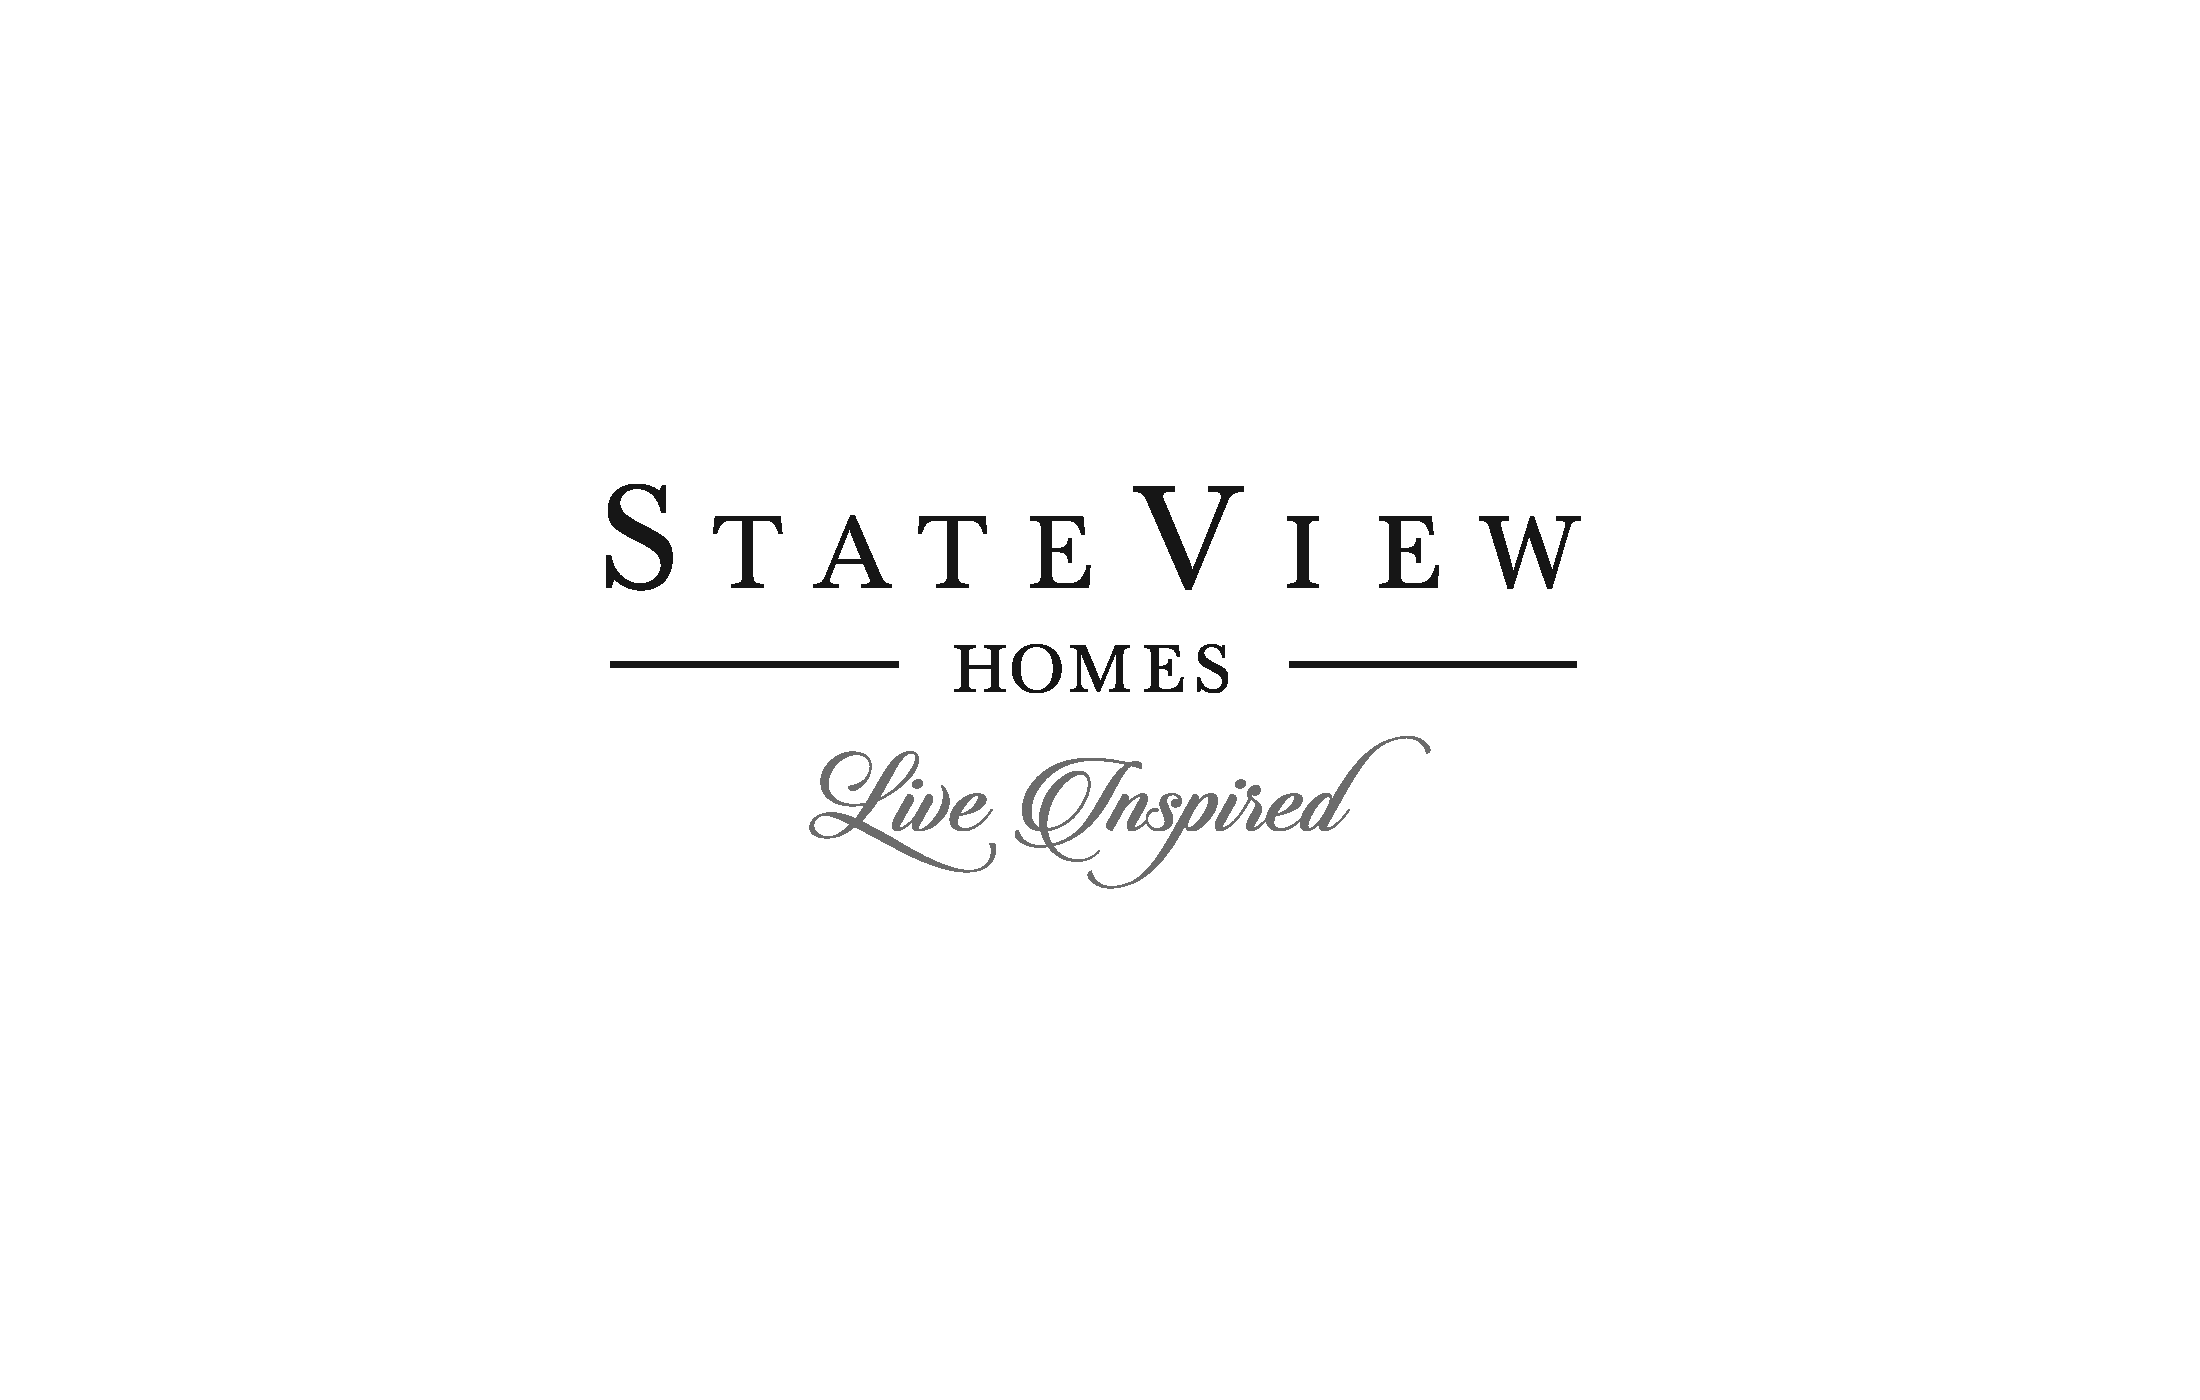 Stateview Homes